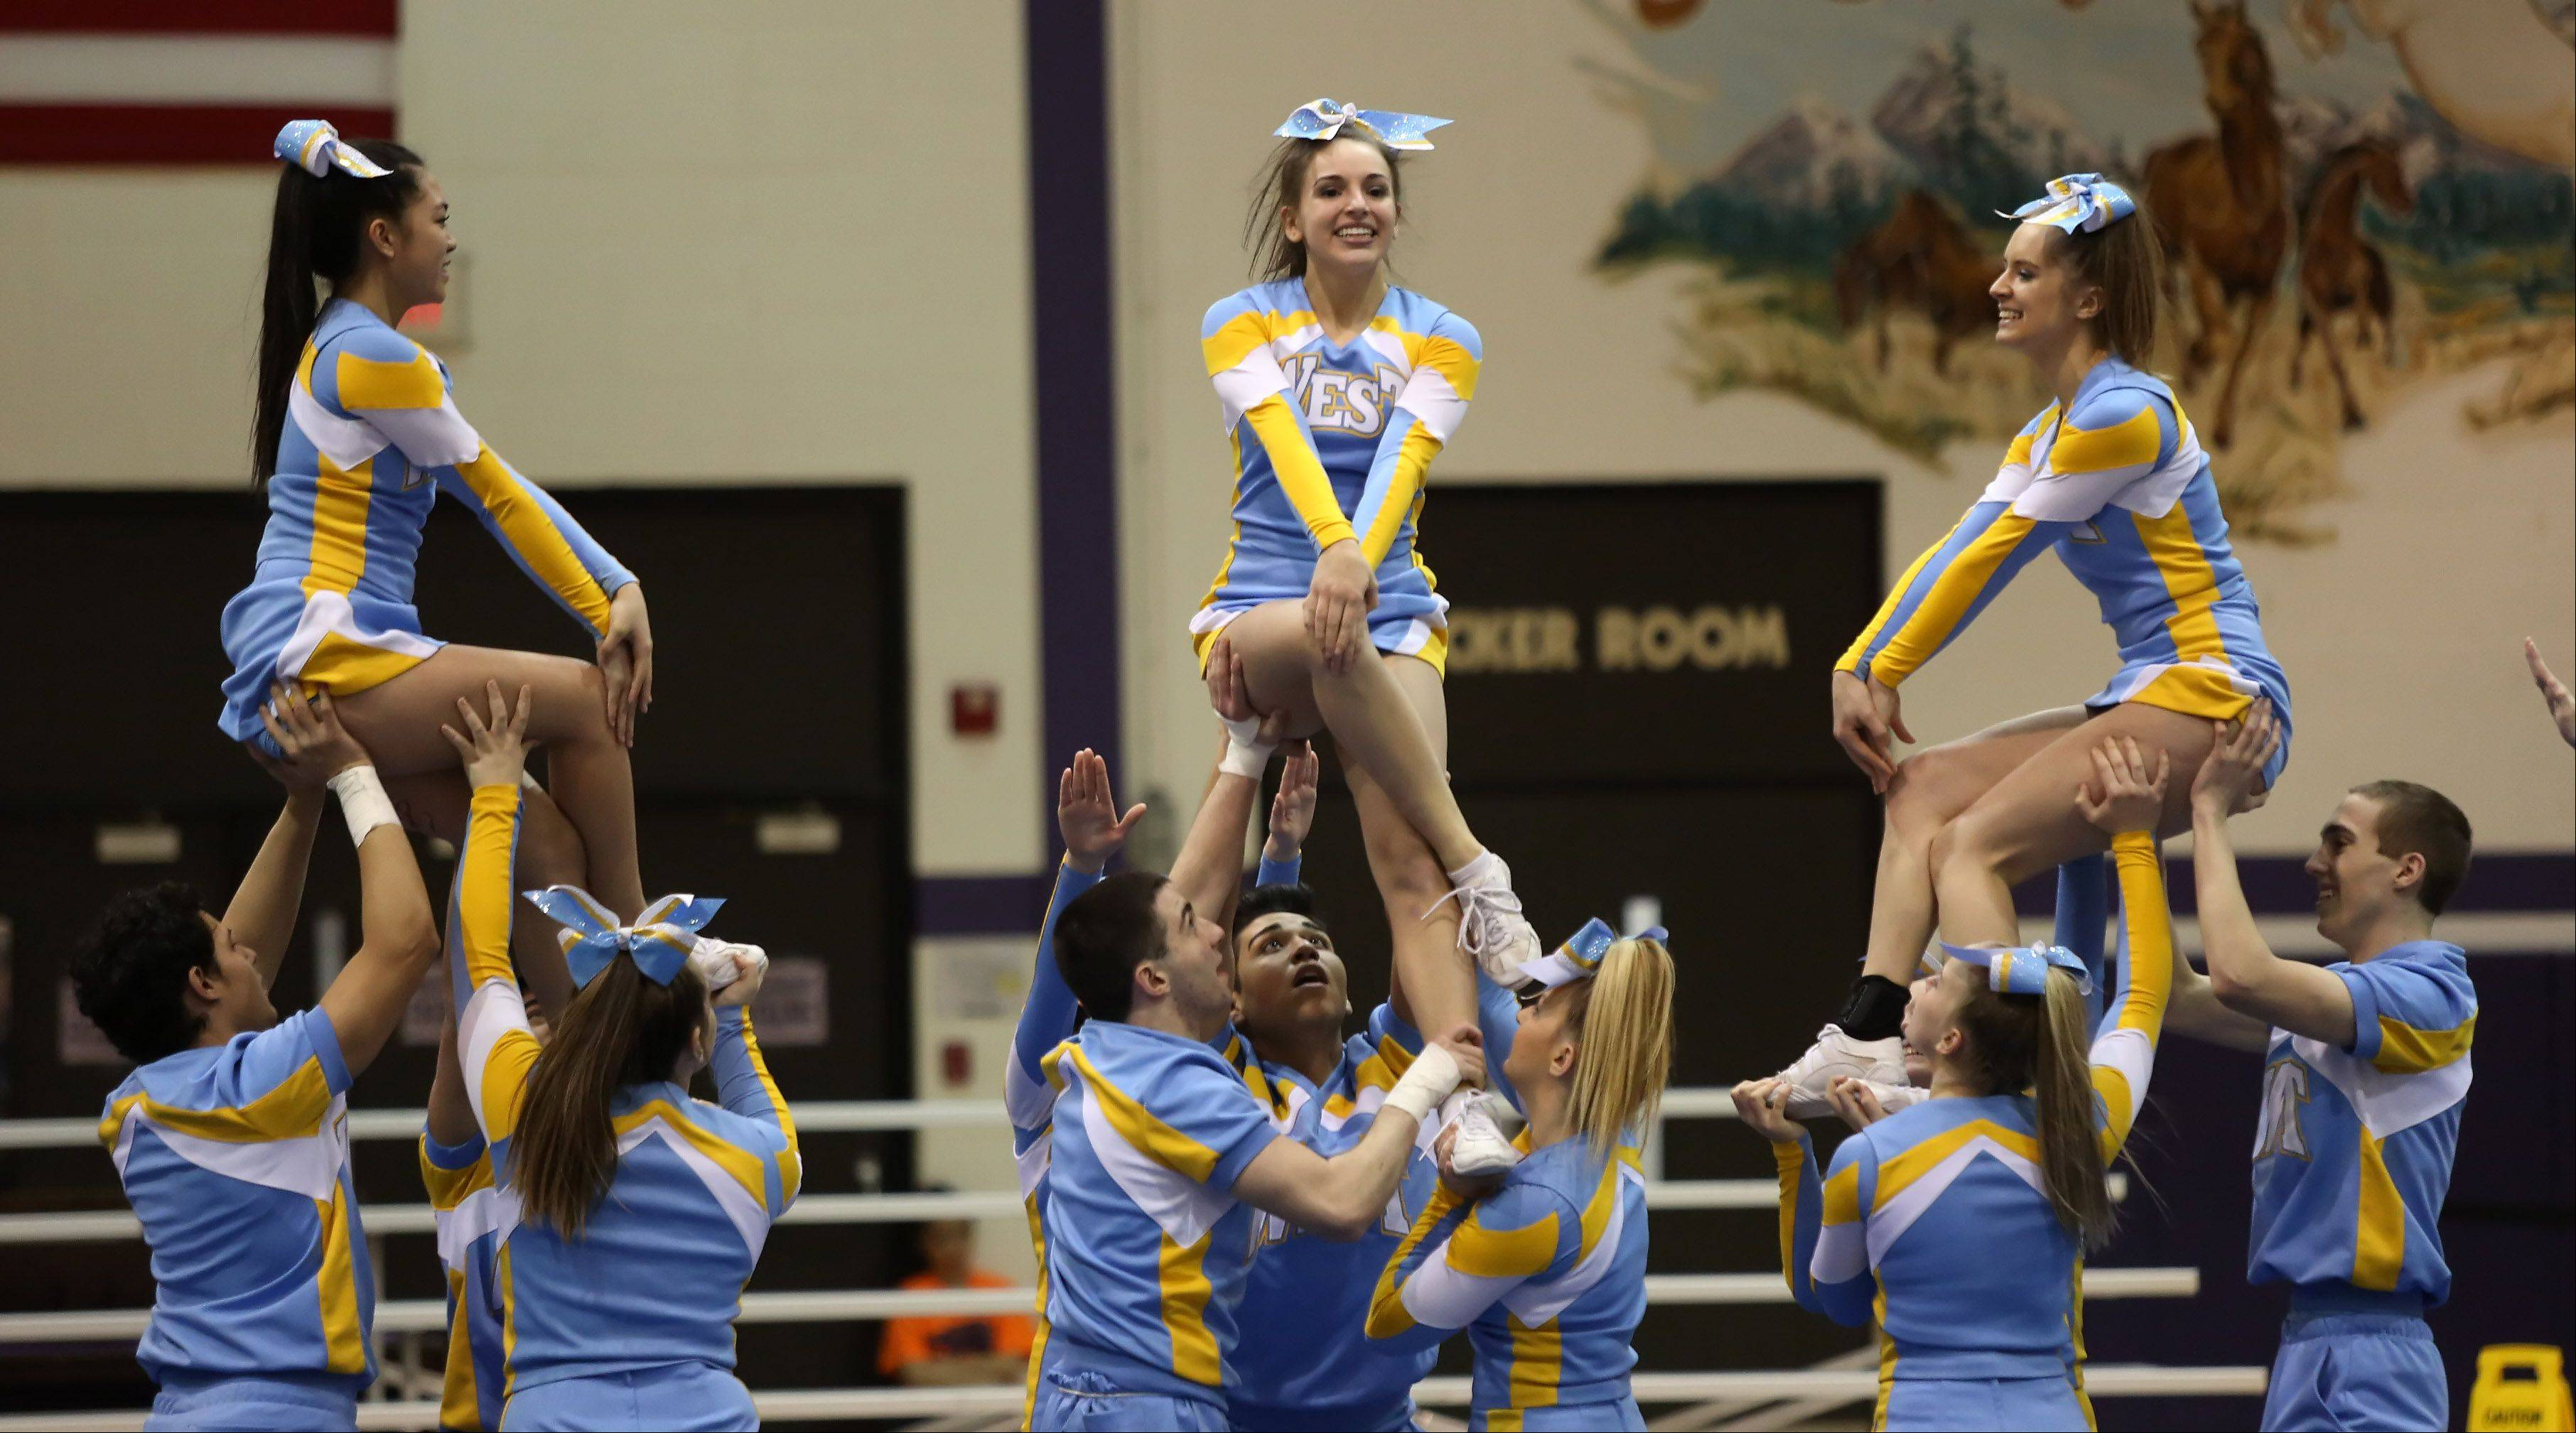 Maine West High School competes in the Coed Team category Sunday during the IHSA Cheerleading Sectional at Rolling Meadows High School.